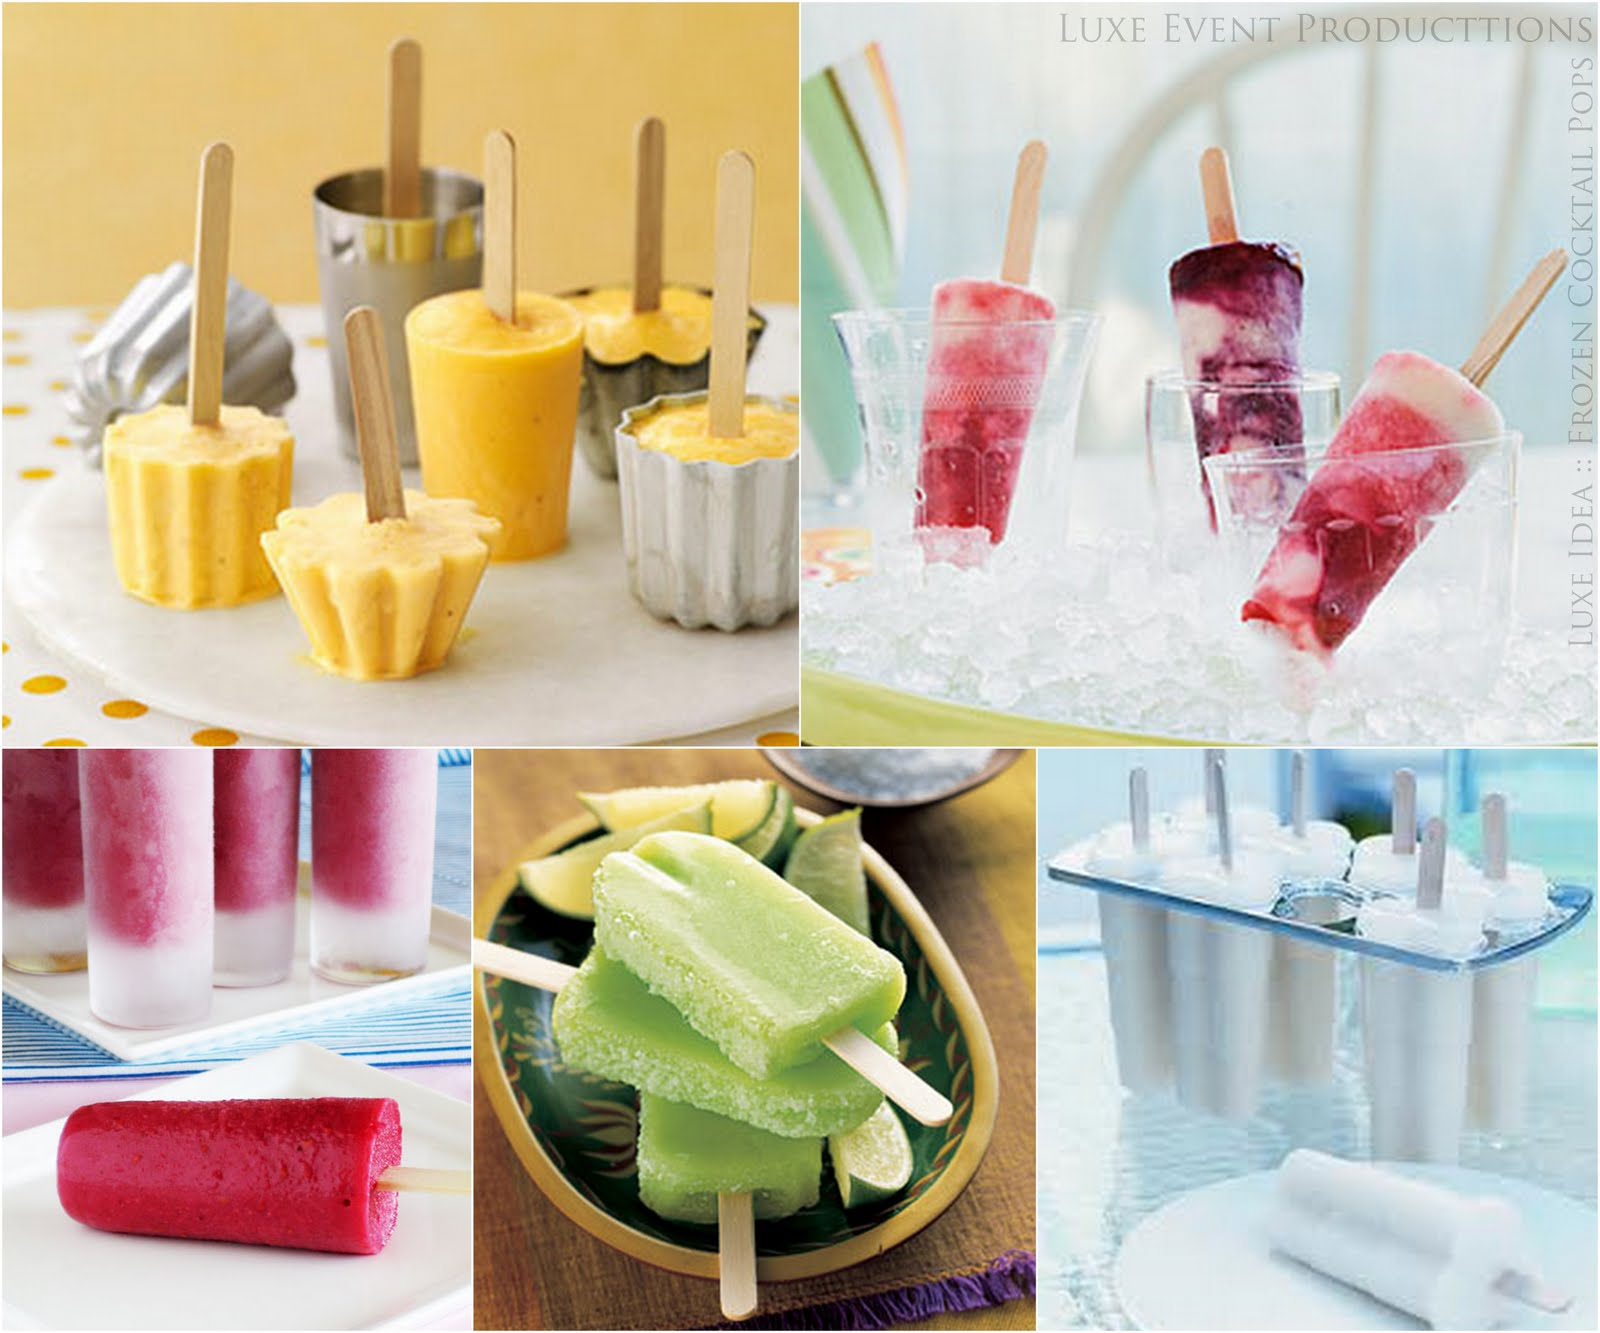 Cocktail Wedding Ideas: My Wedding Reception Ideas Blog: Some Cocktail Popsicle